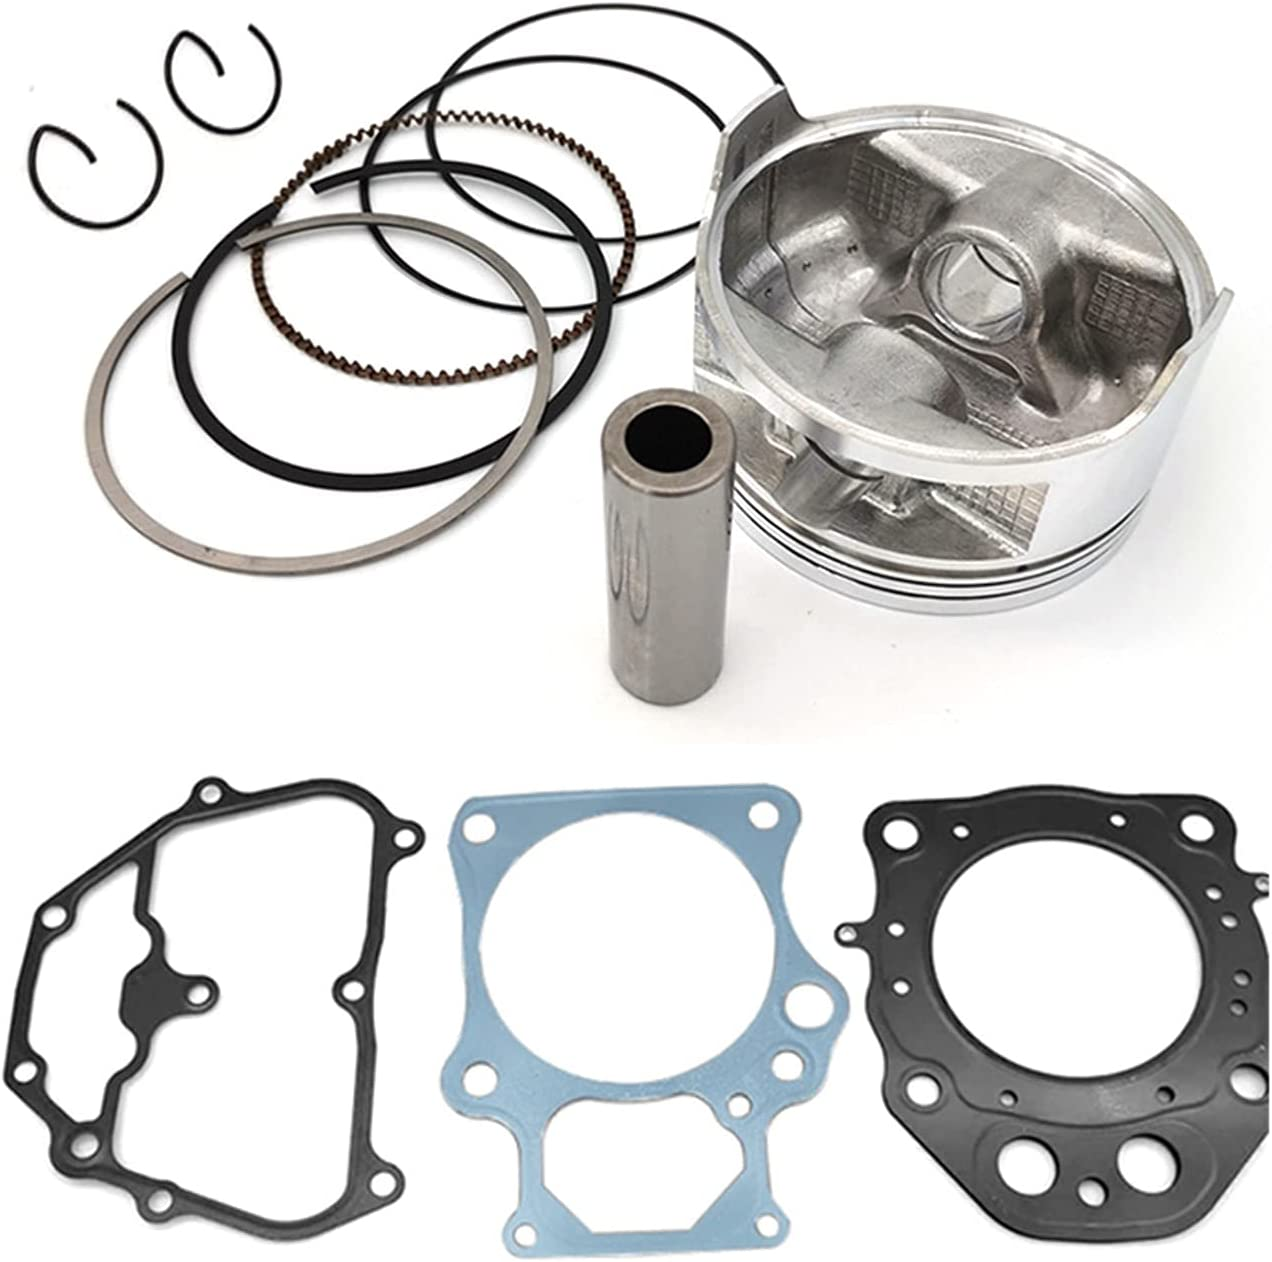 ZHUSHANG SHUANGX OFFicial site 86.50mm Financial sales sale Aluminum Piston Gasket Ring Fit Kit for